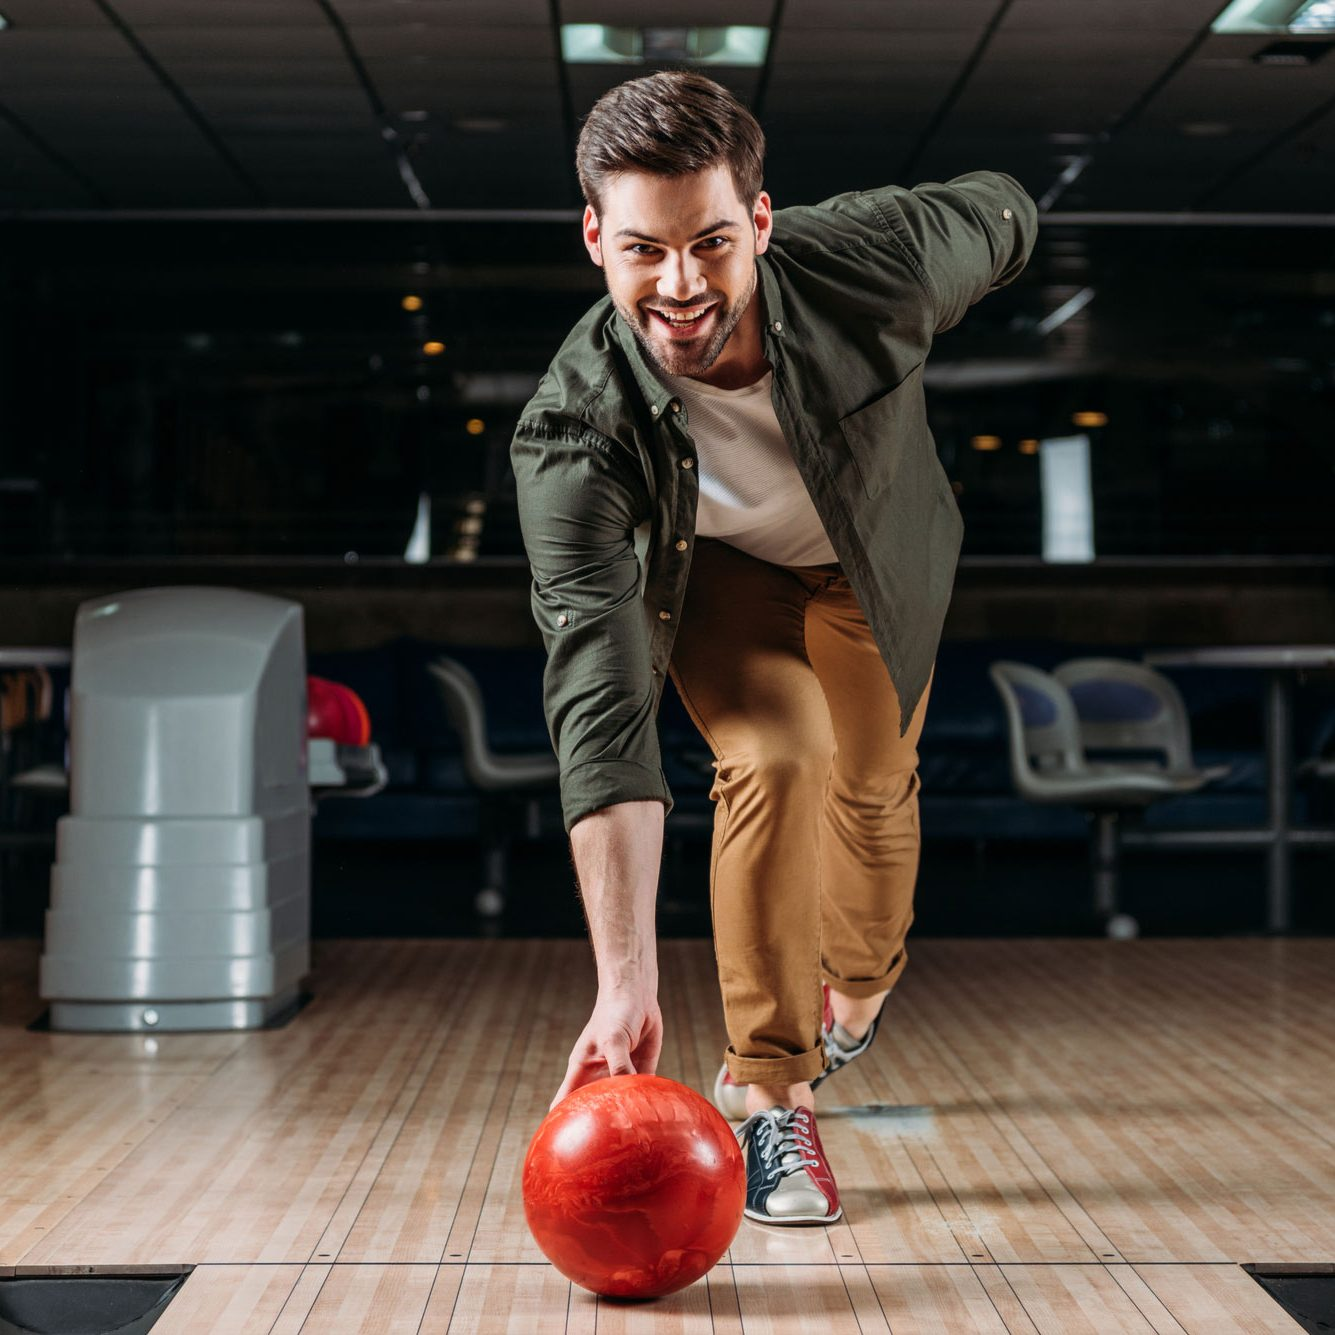 image-bowling-homme-salle-quilles-pincourt